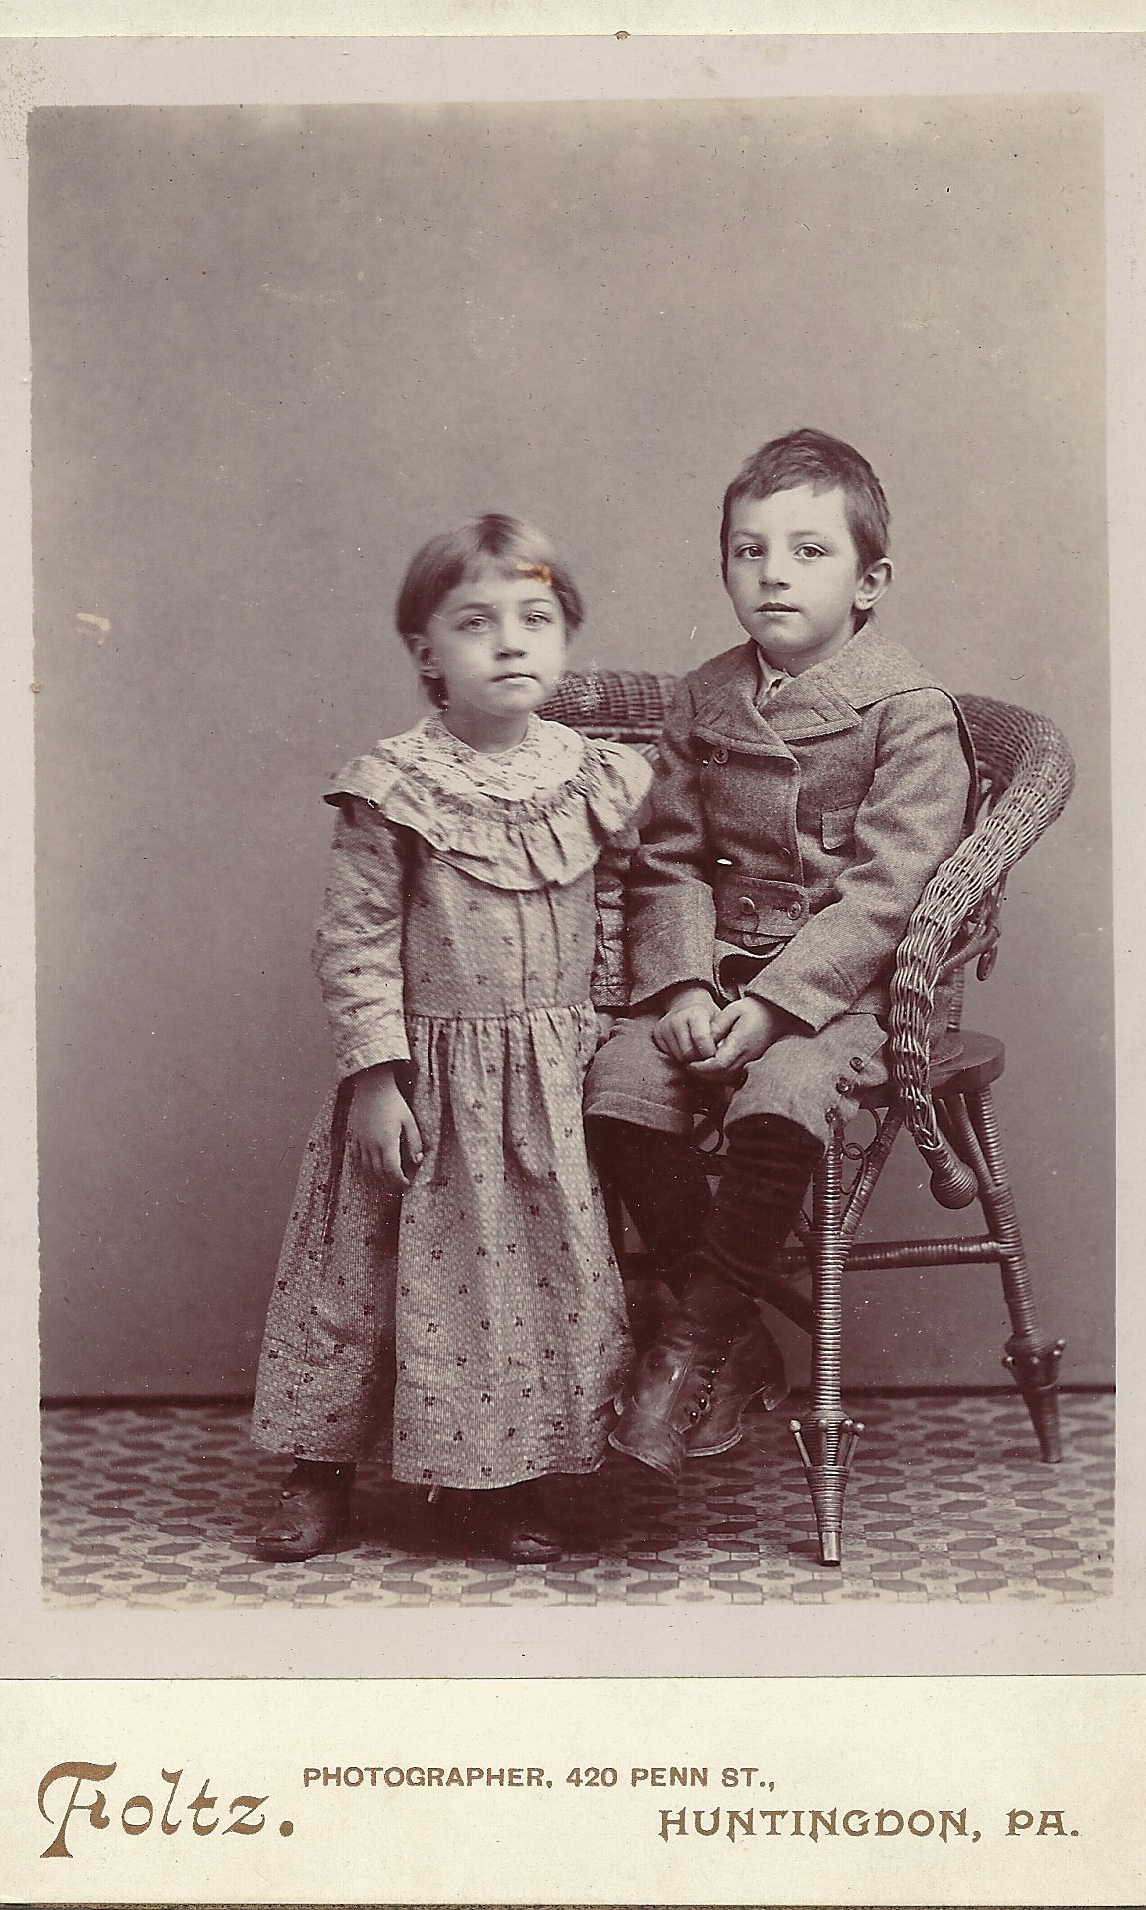 Anna Mary Blatt and her brother, William J Blatt